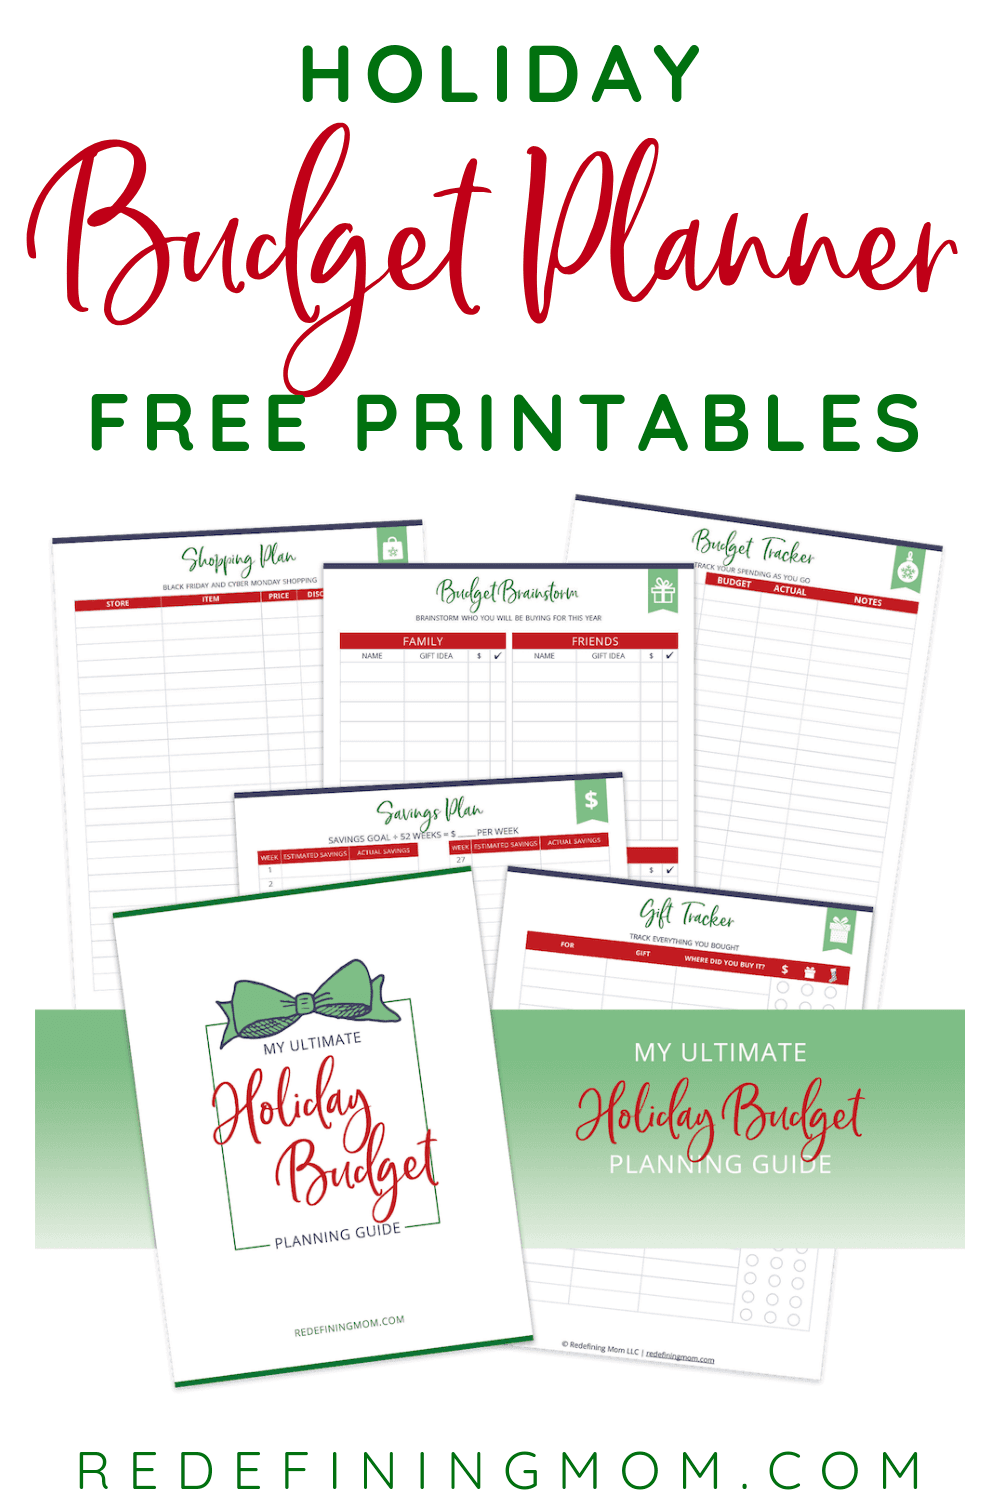 Download your free printable holiday budget planner ...